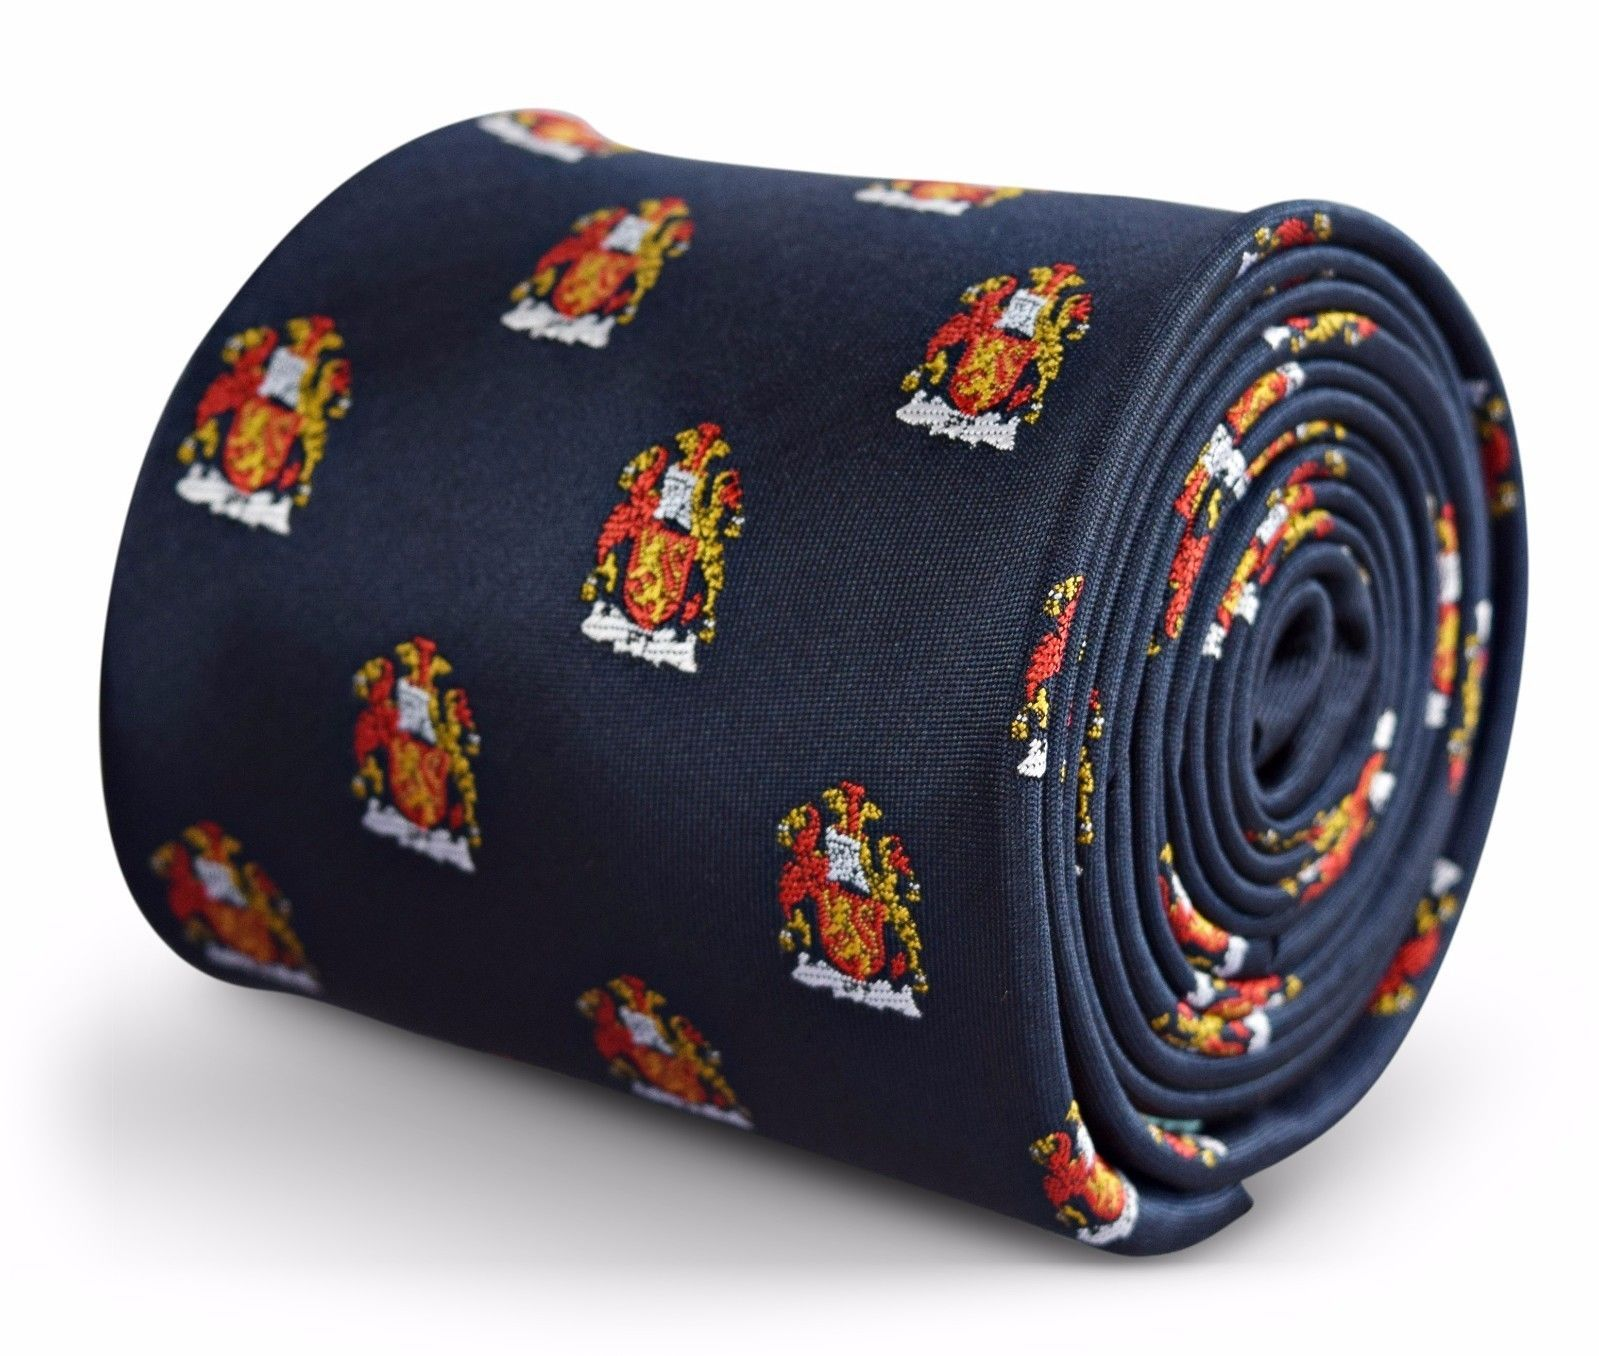 Navy Mens Tie with embroidered Coat of Arms Design by Frederick Thomas FT3265